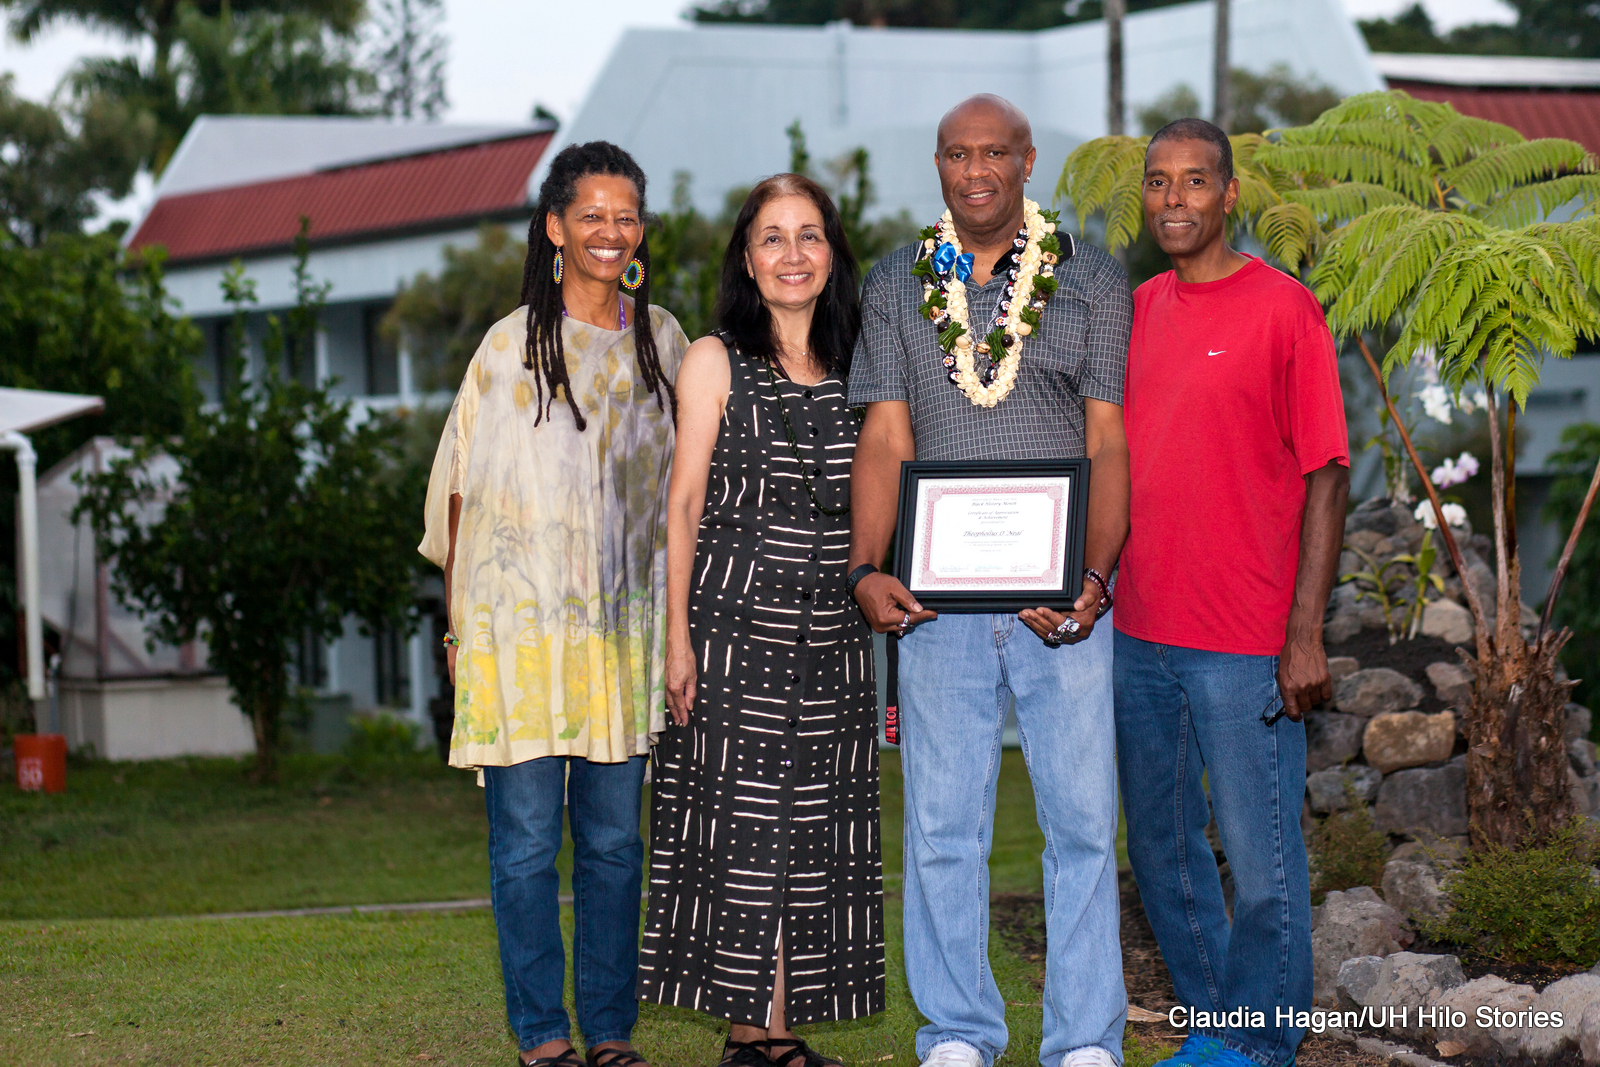 PHOTOS: Soul Food for Thought Café, final event for UH Hilo's Black History Month